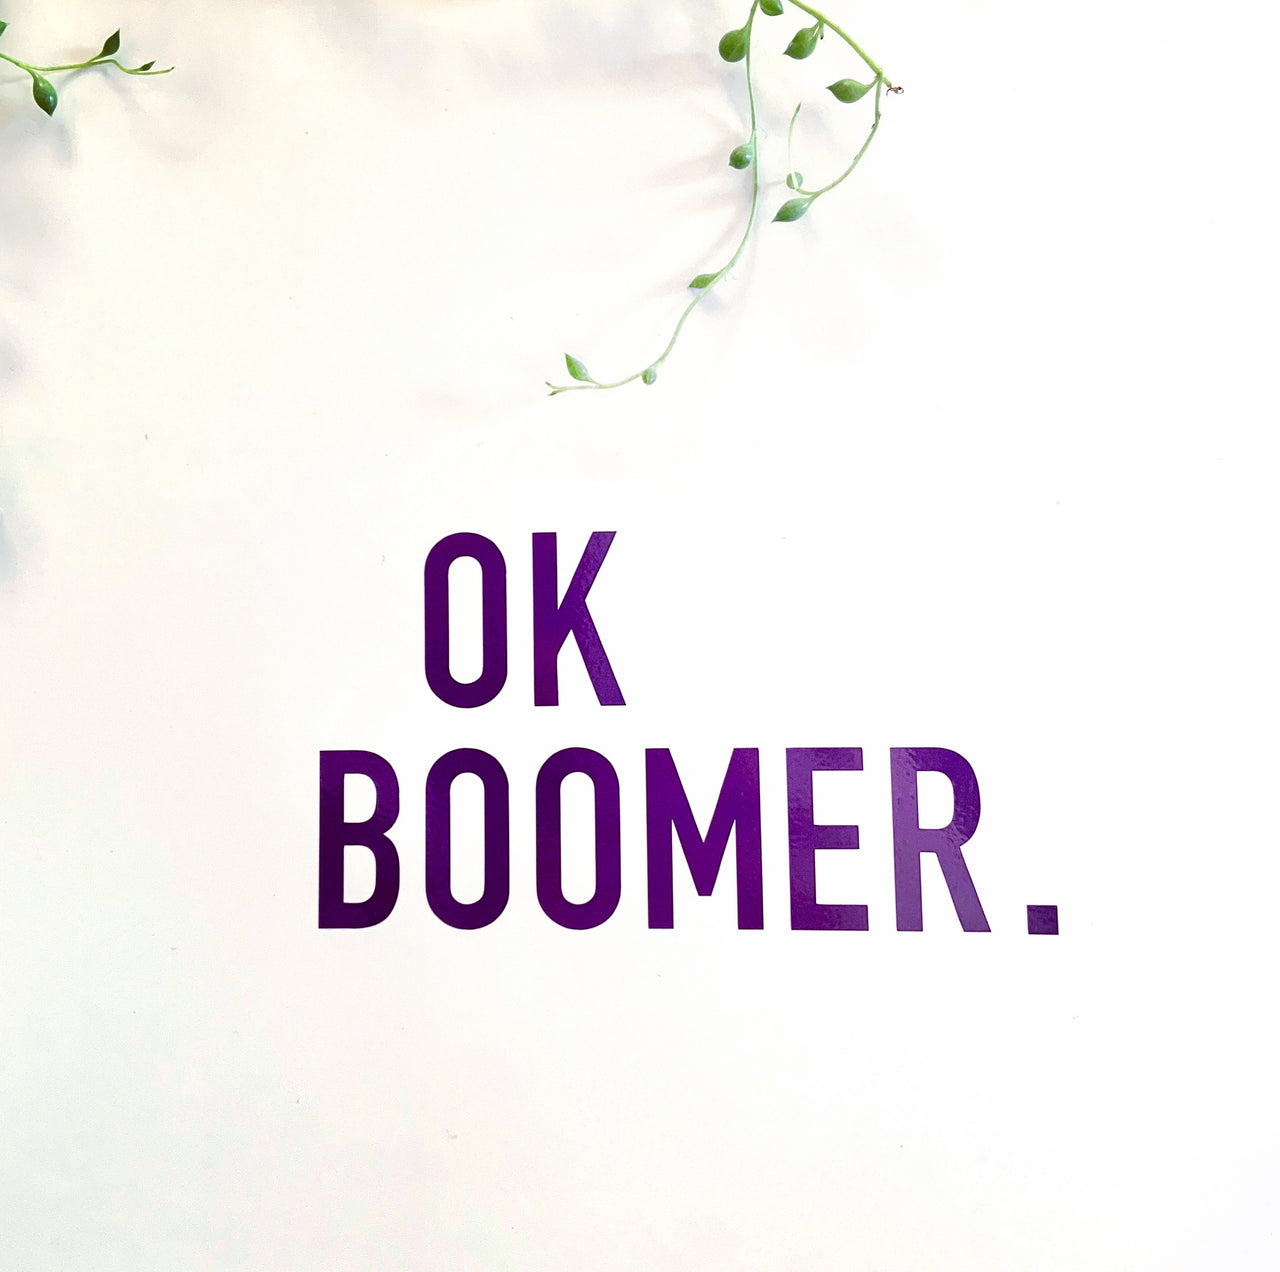 Ok boomer decal - Radical Buttons